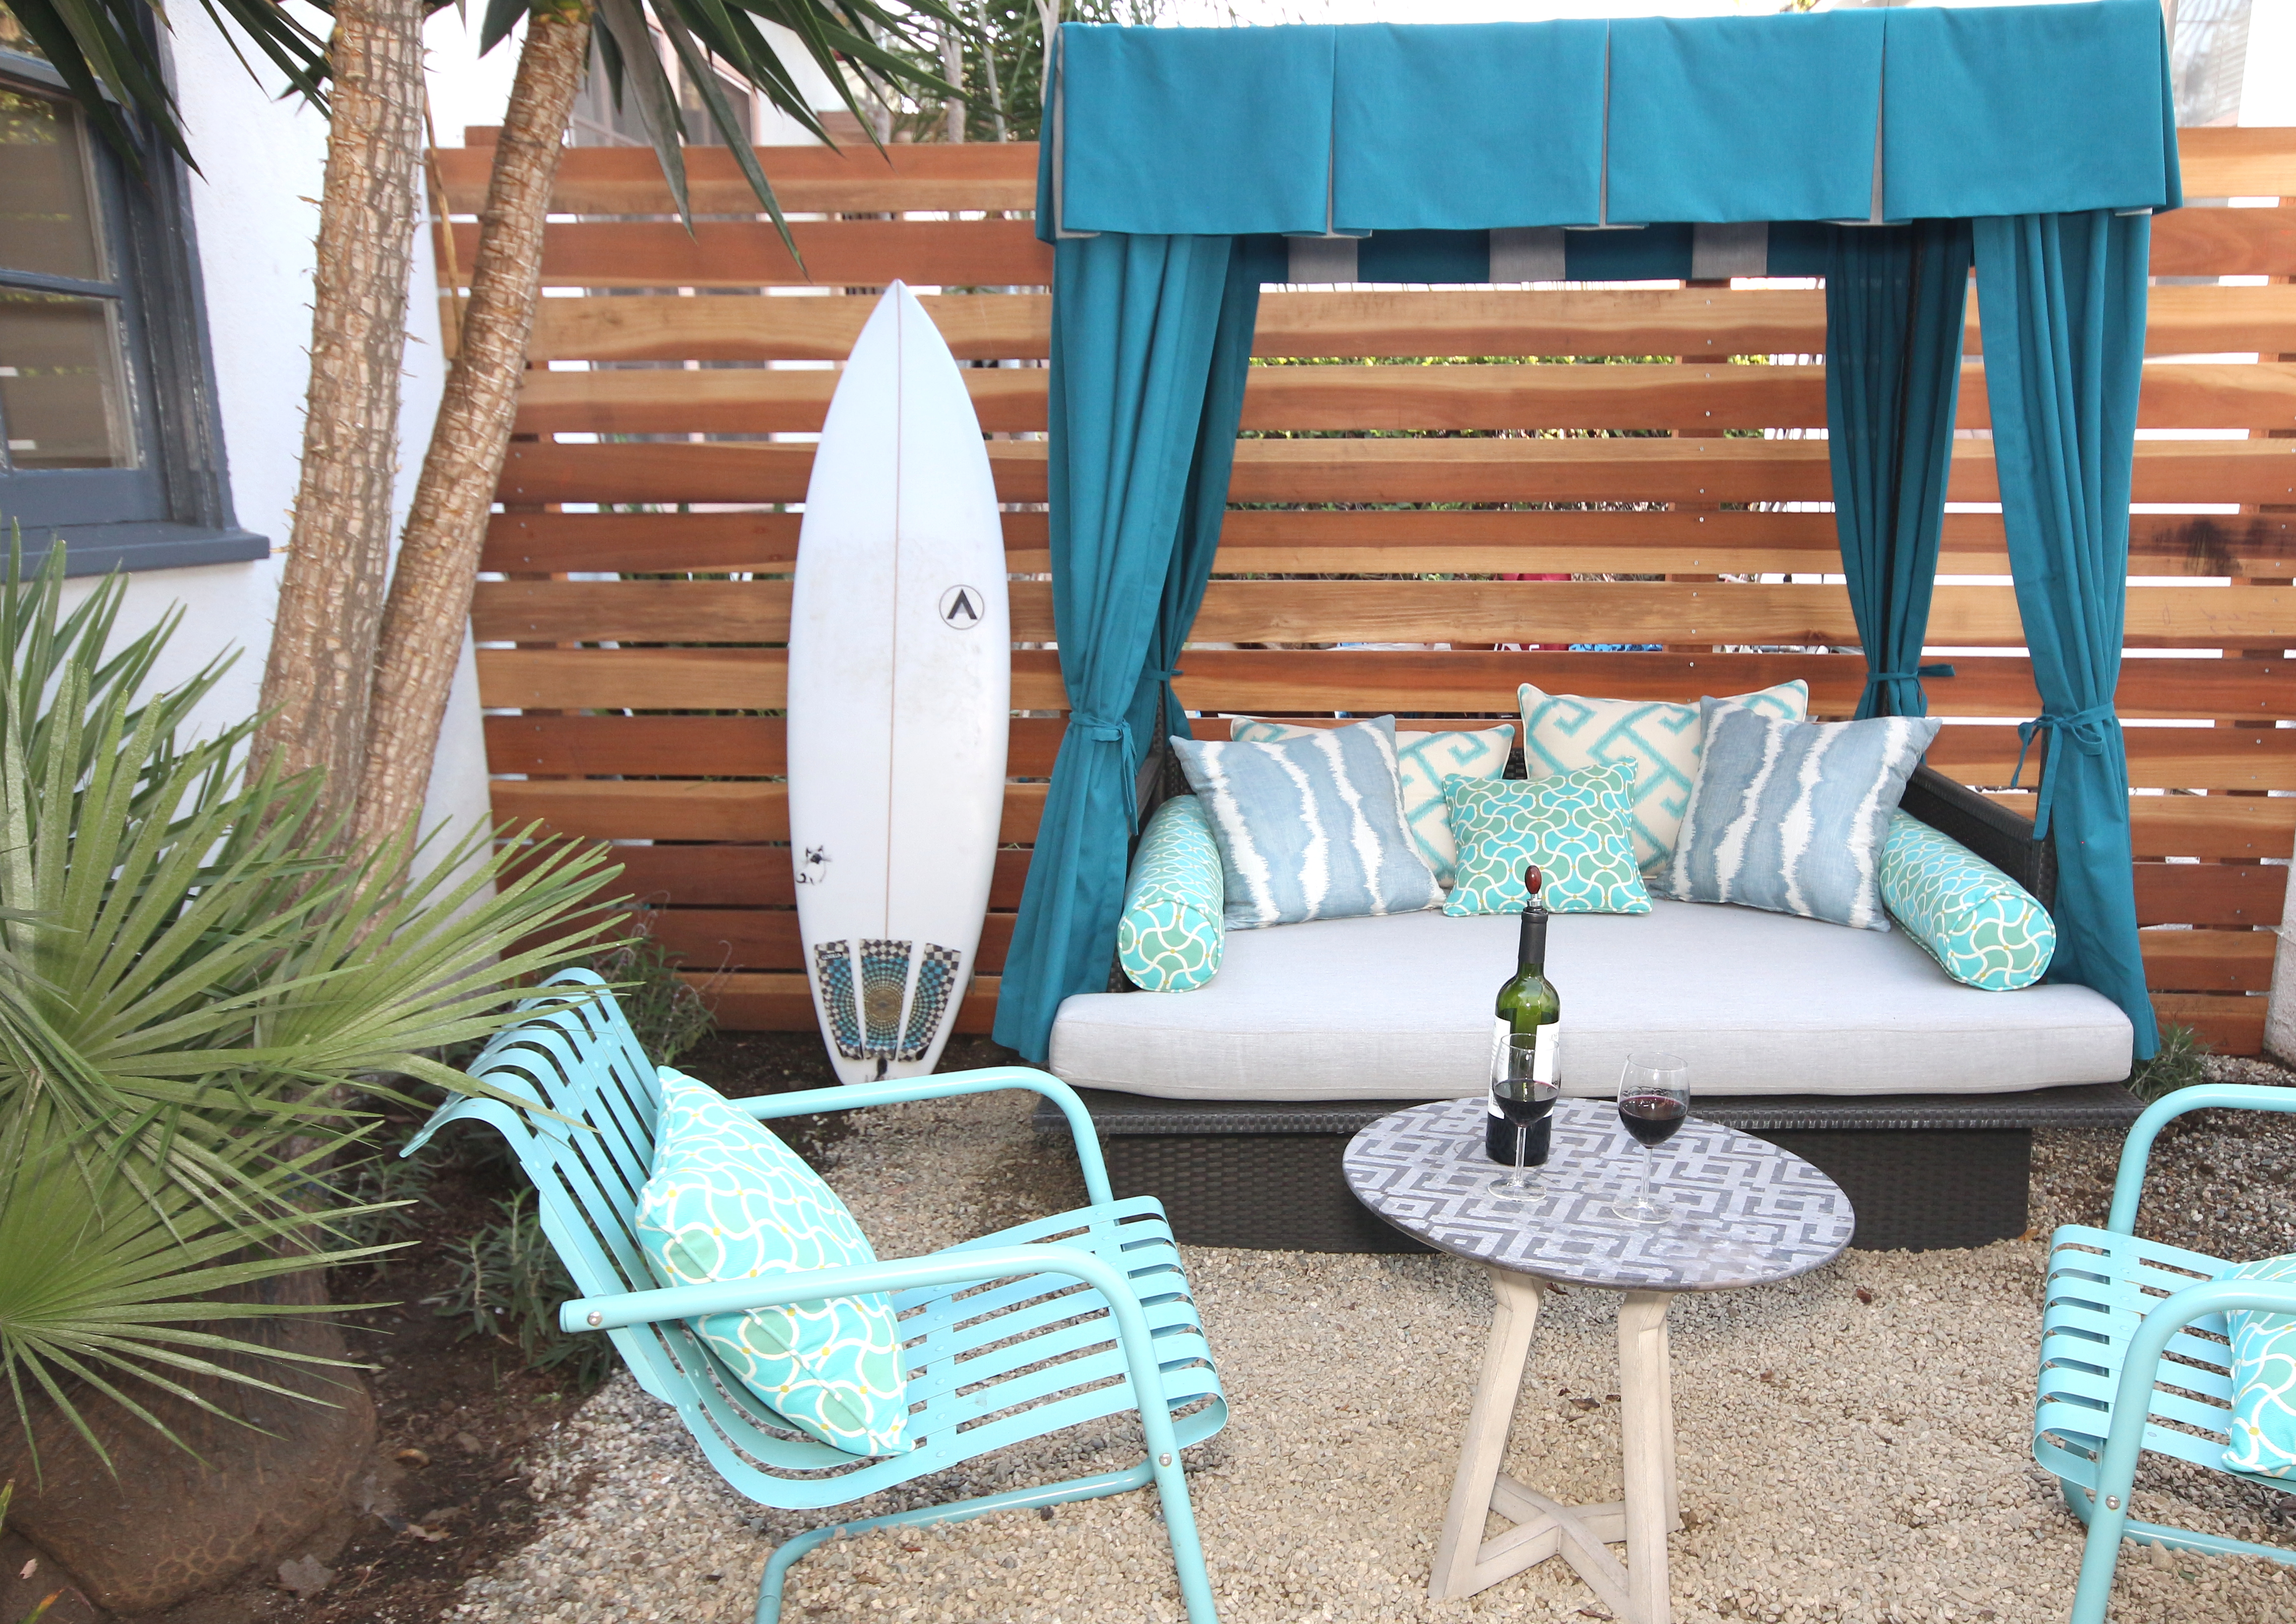 Cabana and outdoor lounge complete with Lamps Plus outdoor chairs and Calico Sunbrella outdoor fabrics